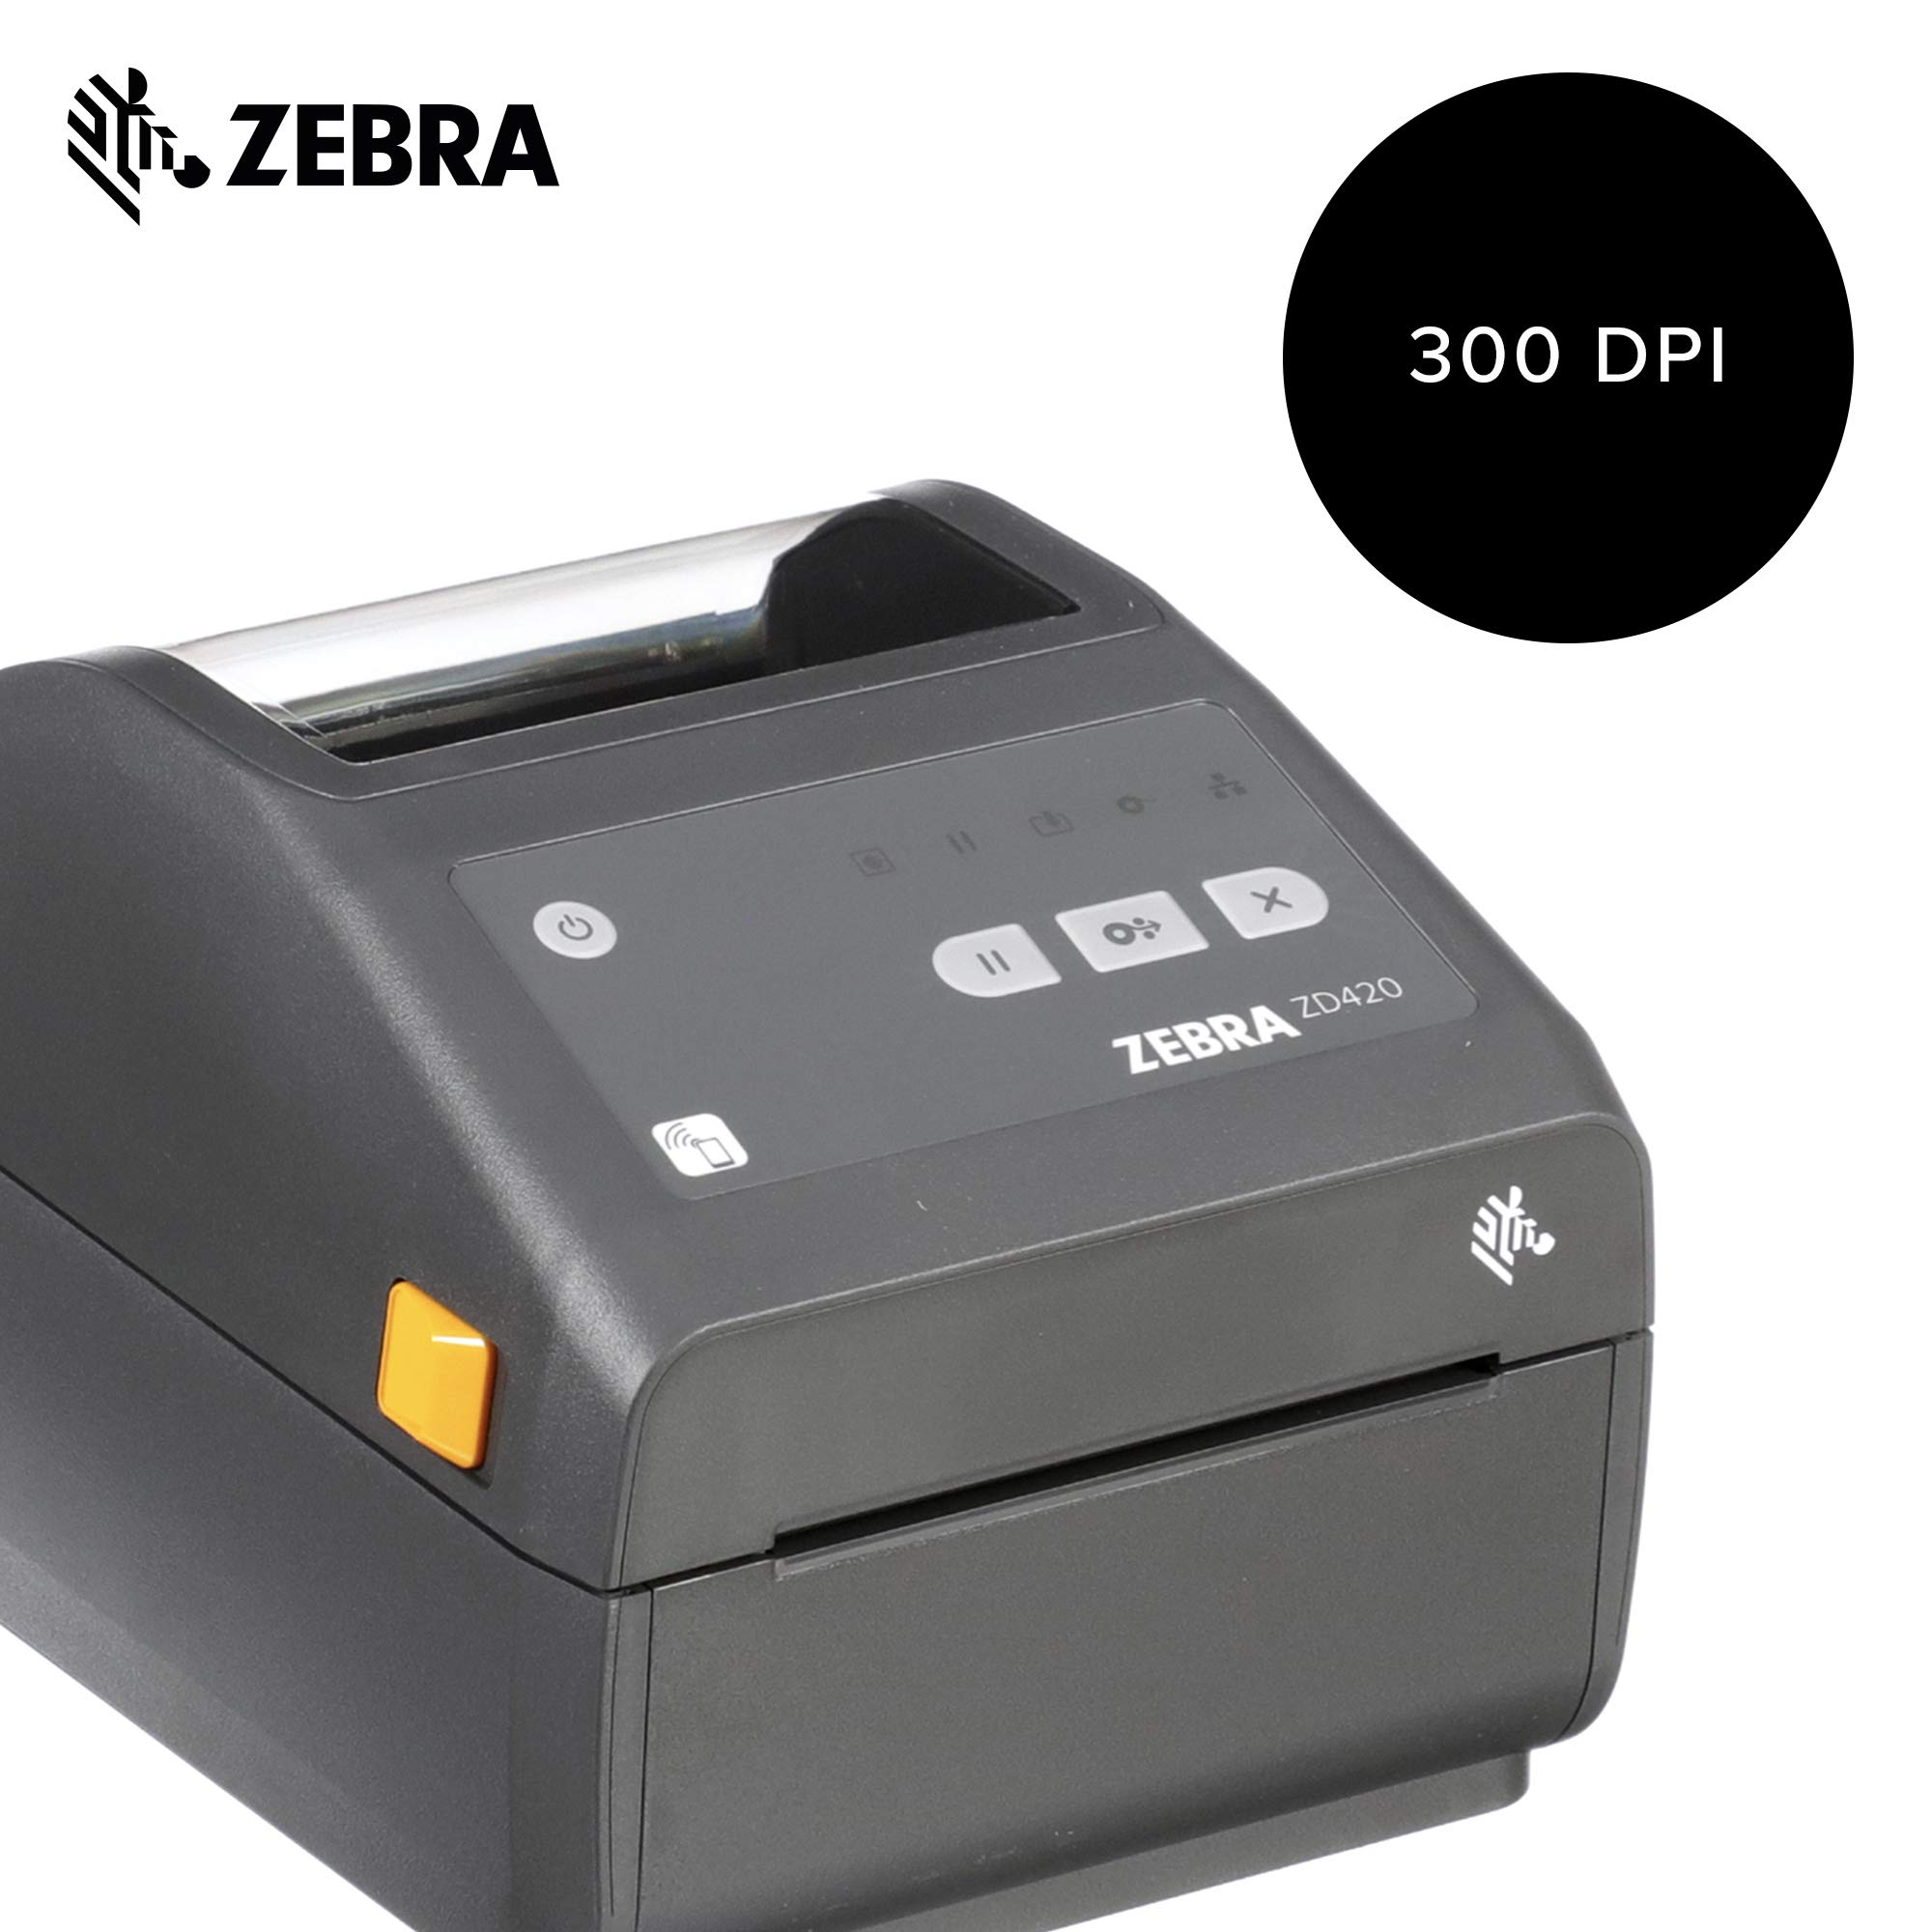 Zebra - ZD420d Direct Thermal Desktop Printer for Labels and Barcodes - Print Width 4 in - 300 dpi - Interface: WiFi, Bluetooth, USB - ZD42043-D01W01EZ by Zebra Technologies (Image #2)